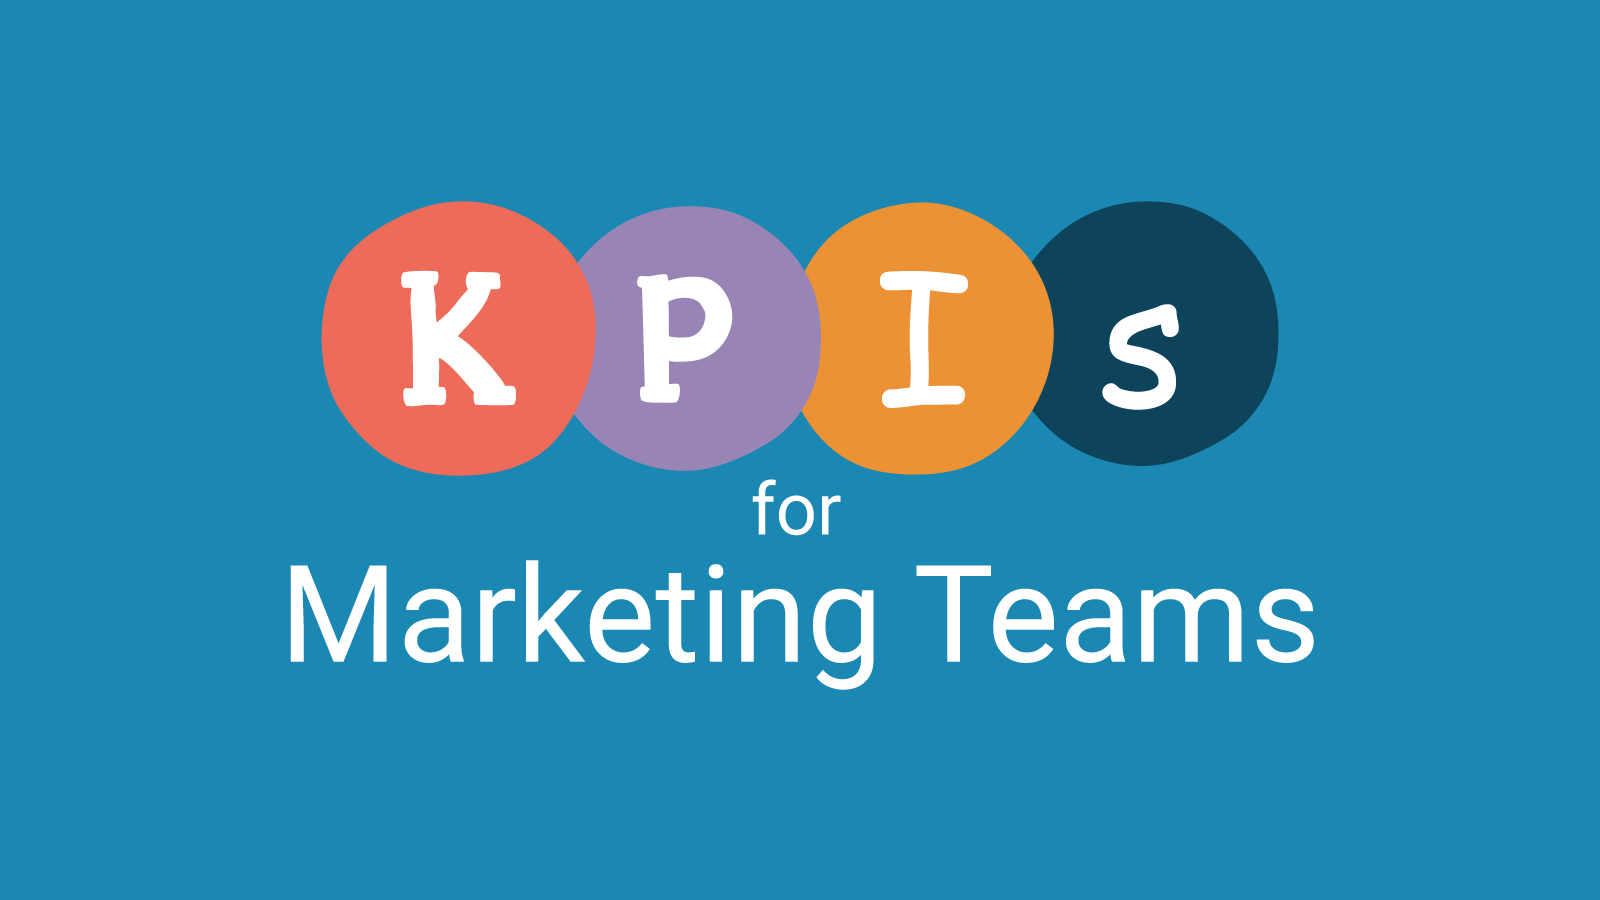 KPIs-for-Marketing-Teams-2